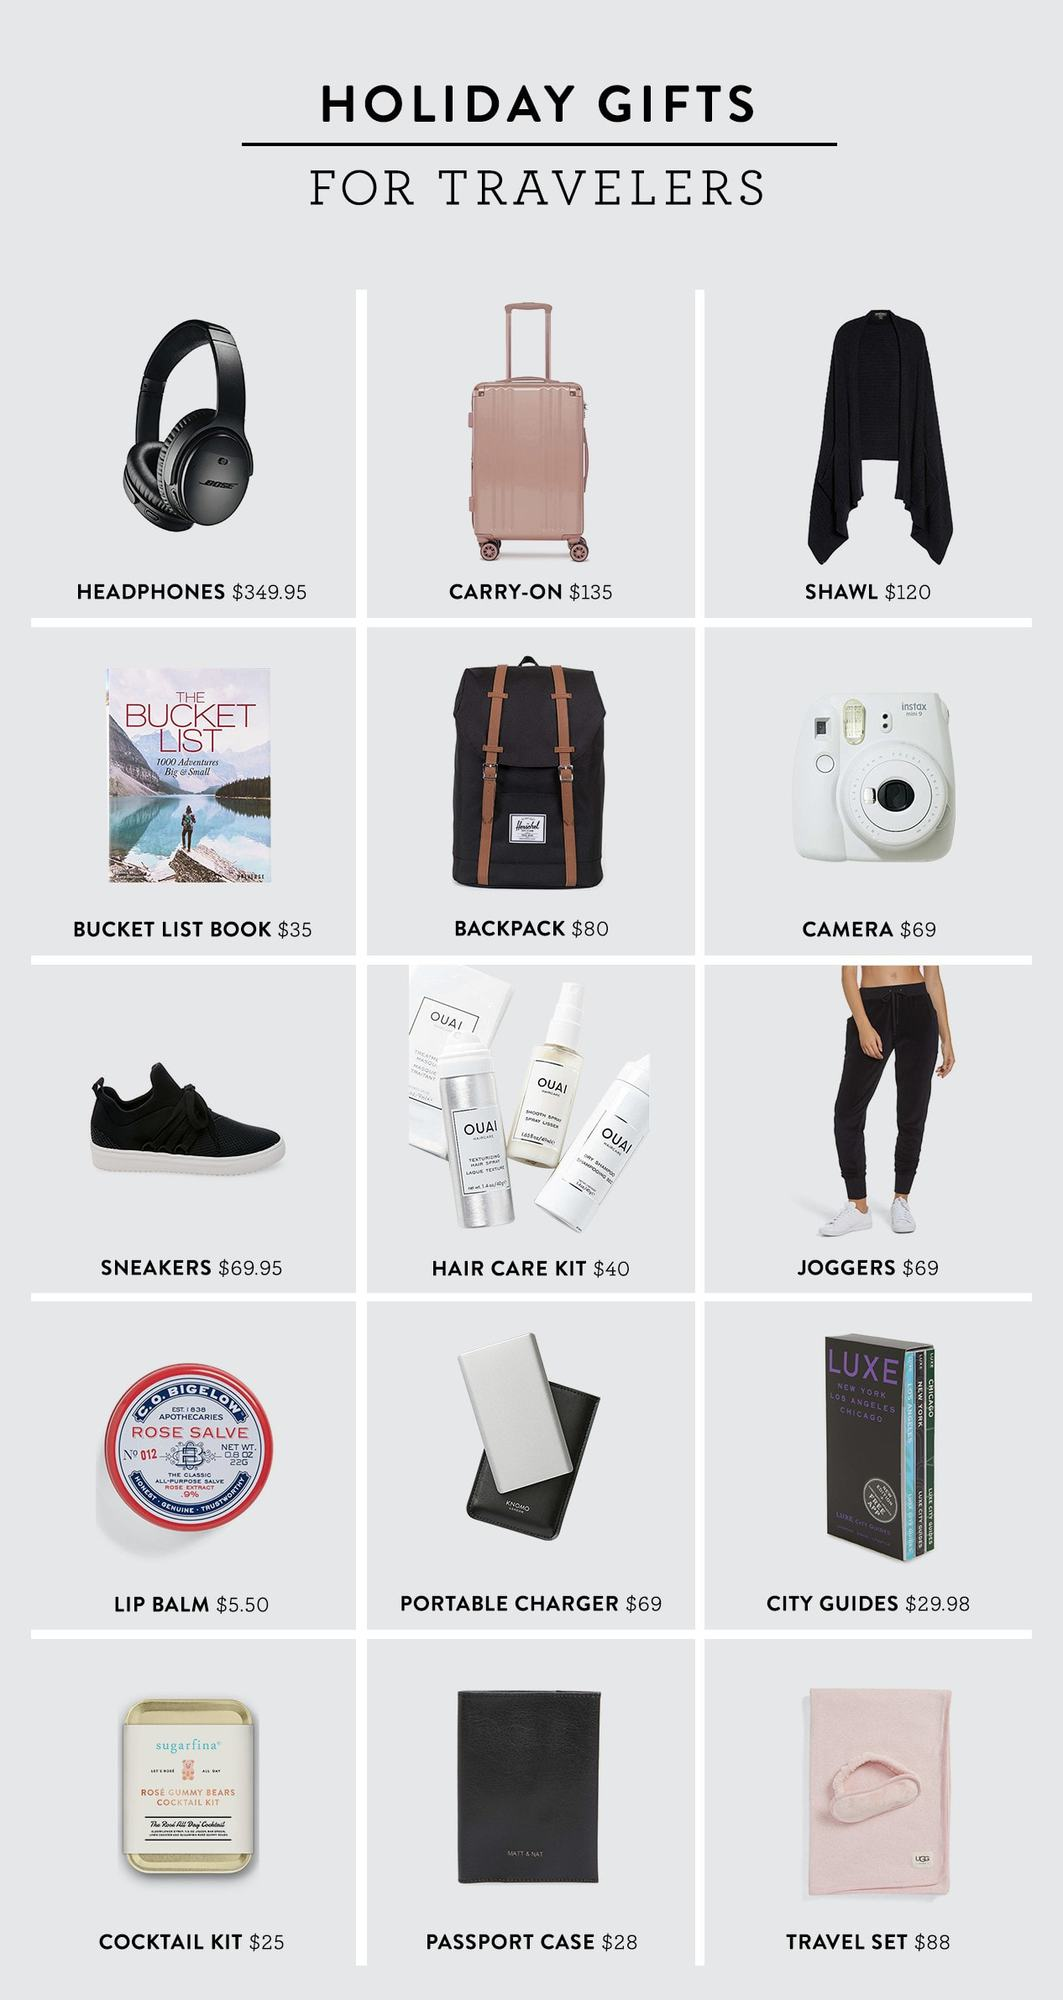 Say 'bon voyage' to the adventure seekers in your life with one of these holiday gifts for travelers. Our top picks include items that will keep your traveler comfortable and organized all trip long! #giftguide #shopping #holidays